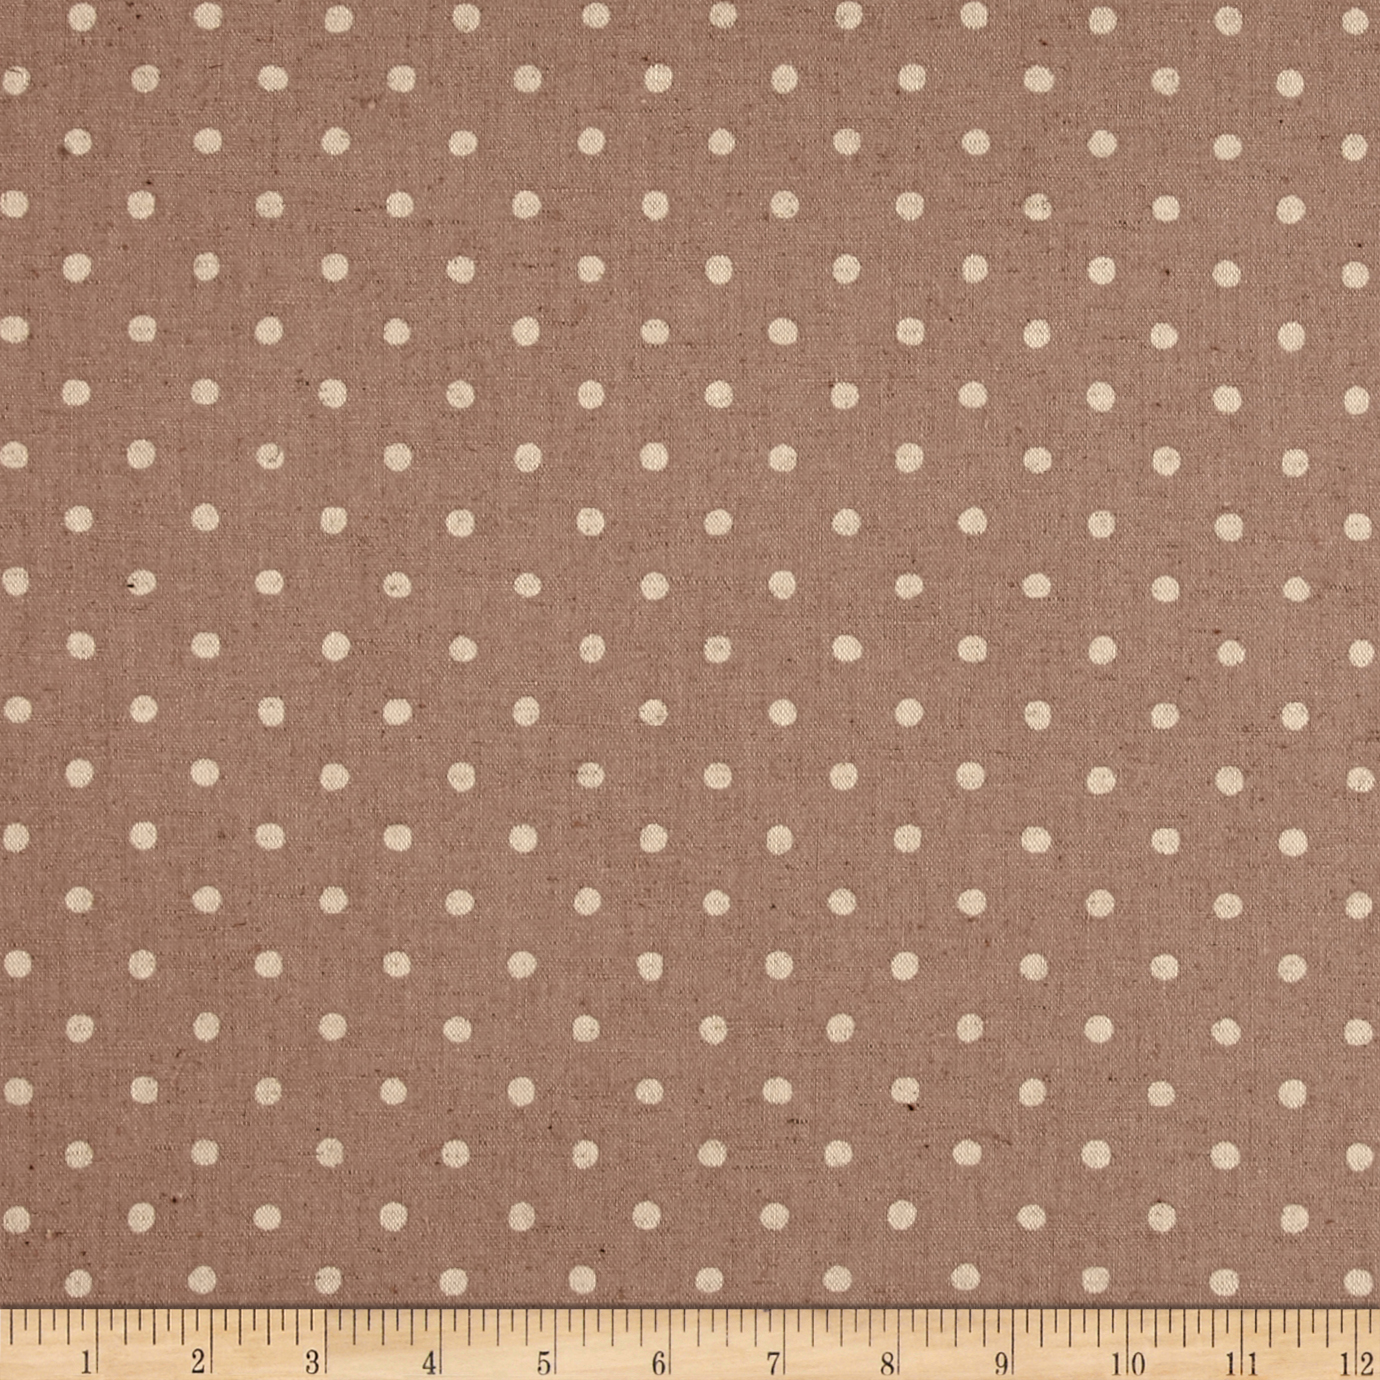 Kaufman Sevenberry Canvas Natural Dots Small Ash Fabric by Kaufman in USA